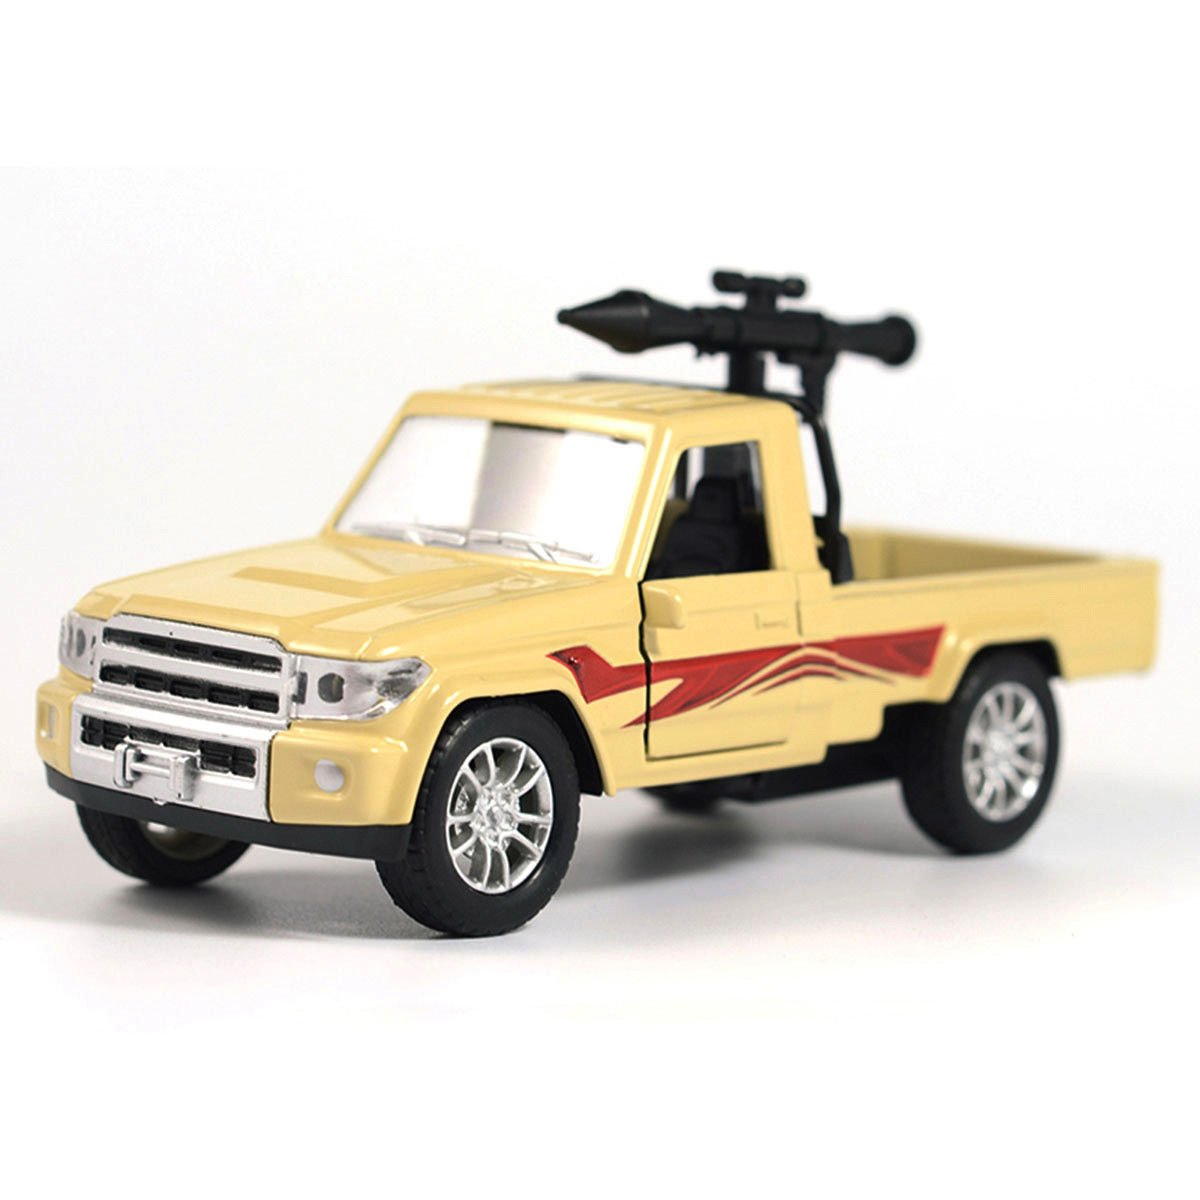 1:28 Military Pickup Truck w/ Antiaircraft Missile Car Model Diecast Toy Kid Boy